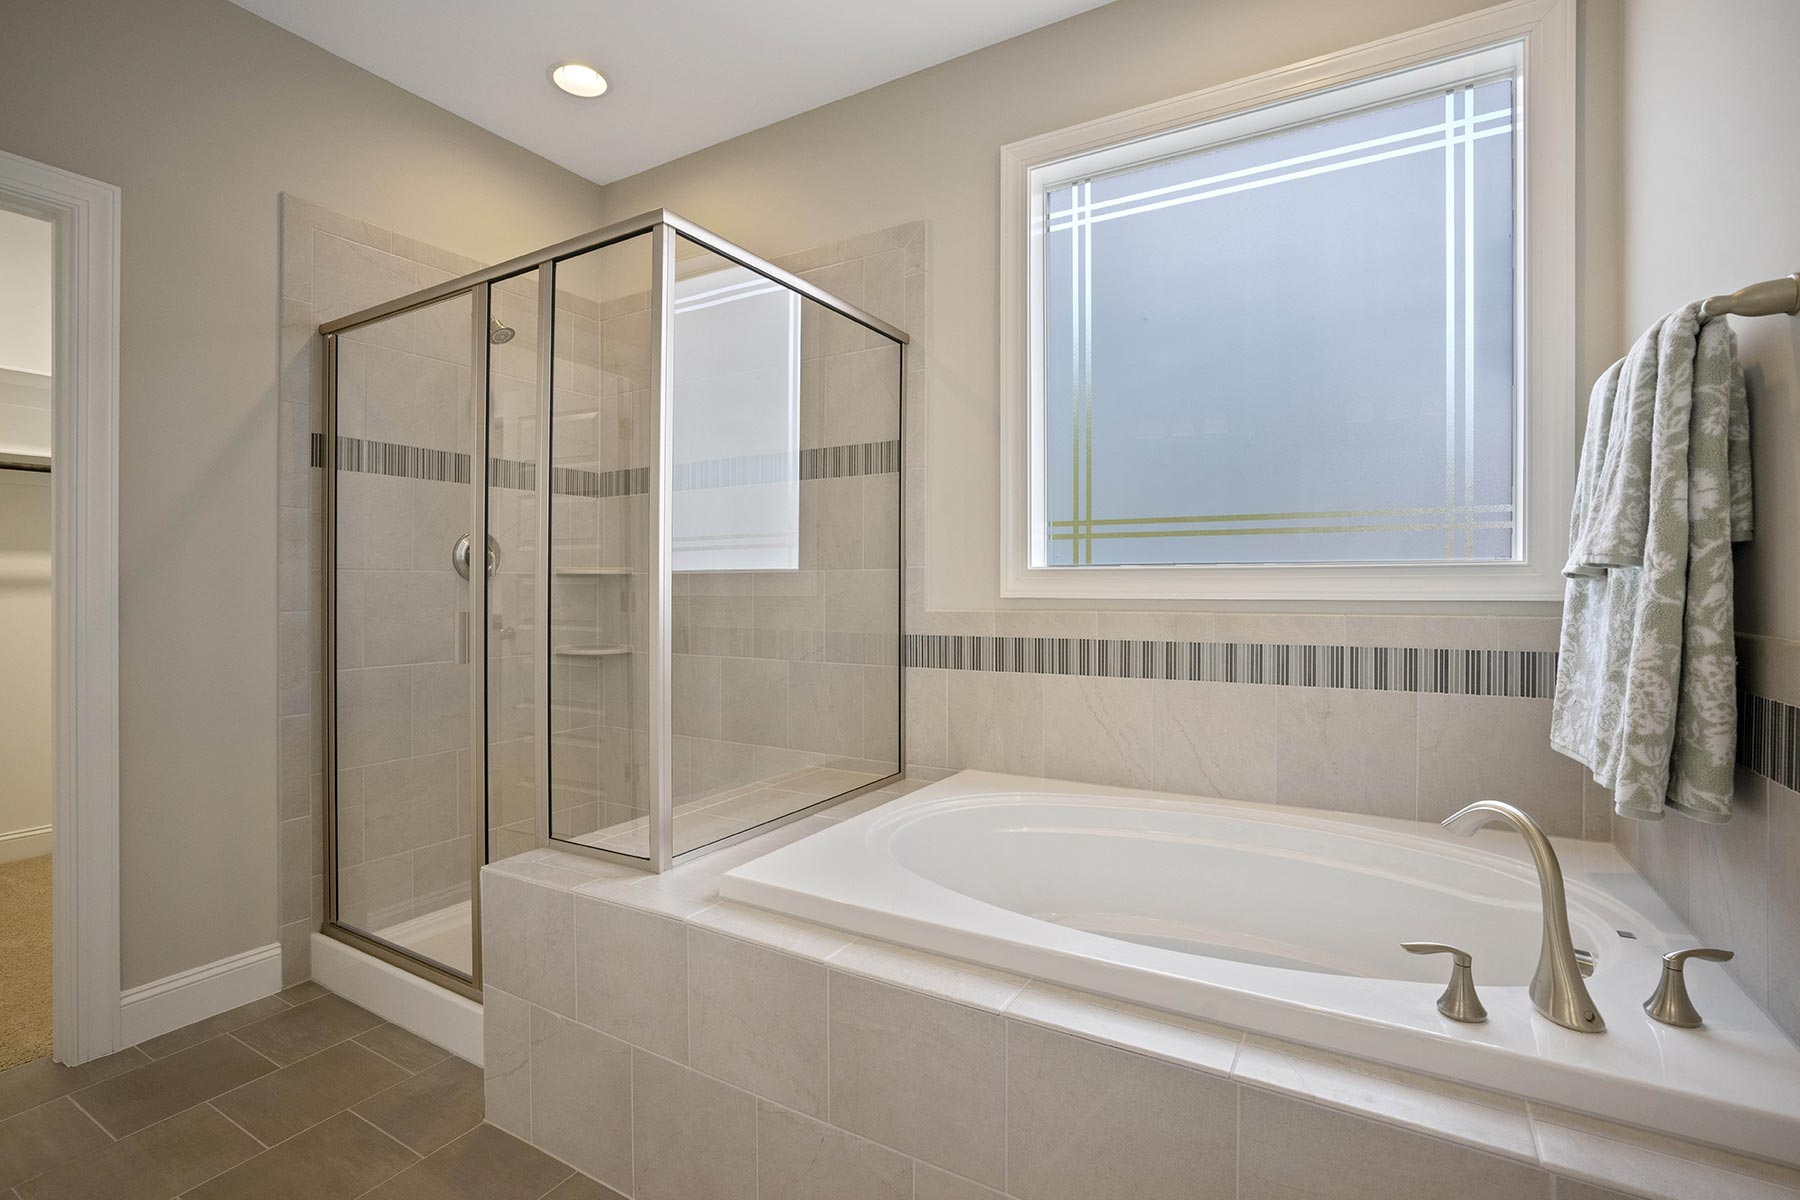 Juniper Plan Bath at Ballentine Place in Holly Springs North Carolina by Mattamy Homes